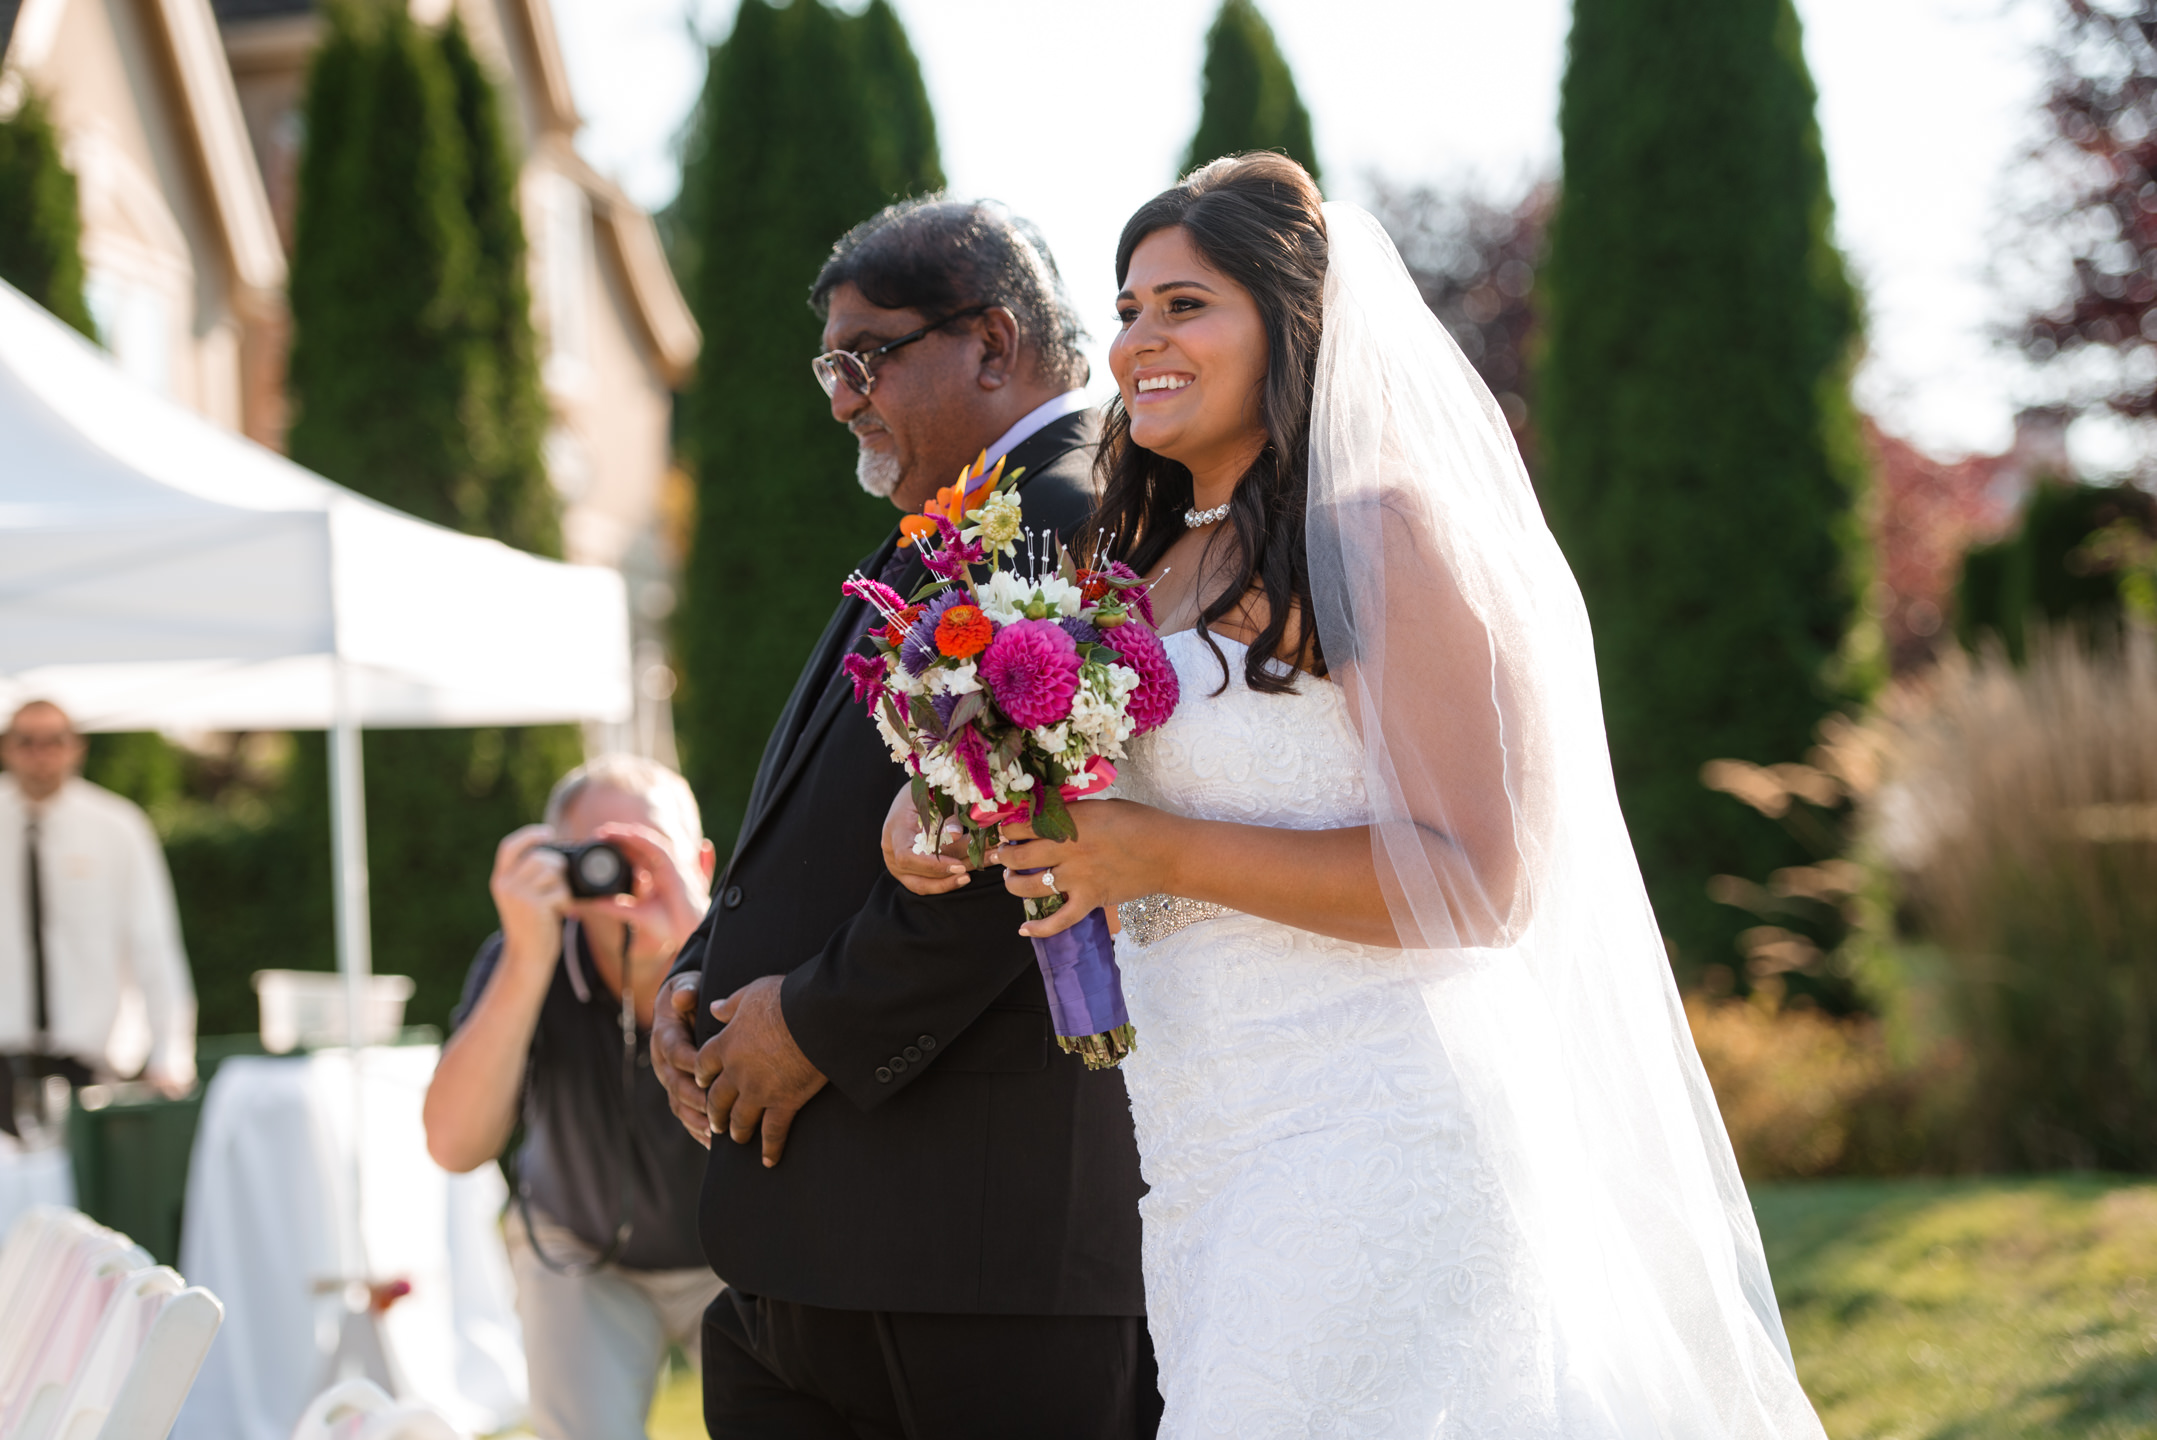 Father and Indian Bride Happy Walk Down Aisle during Wedding Ceremony